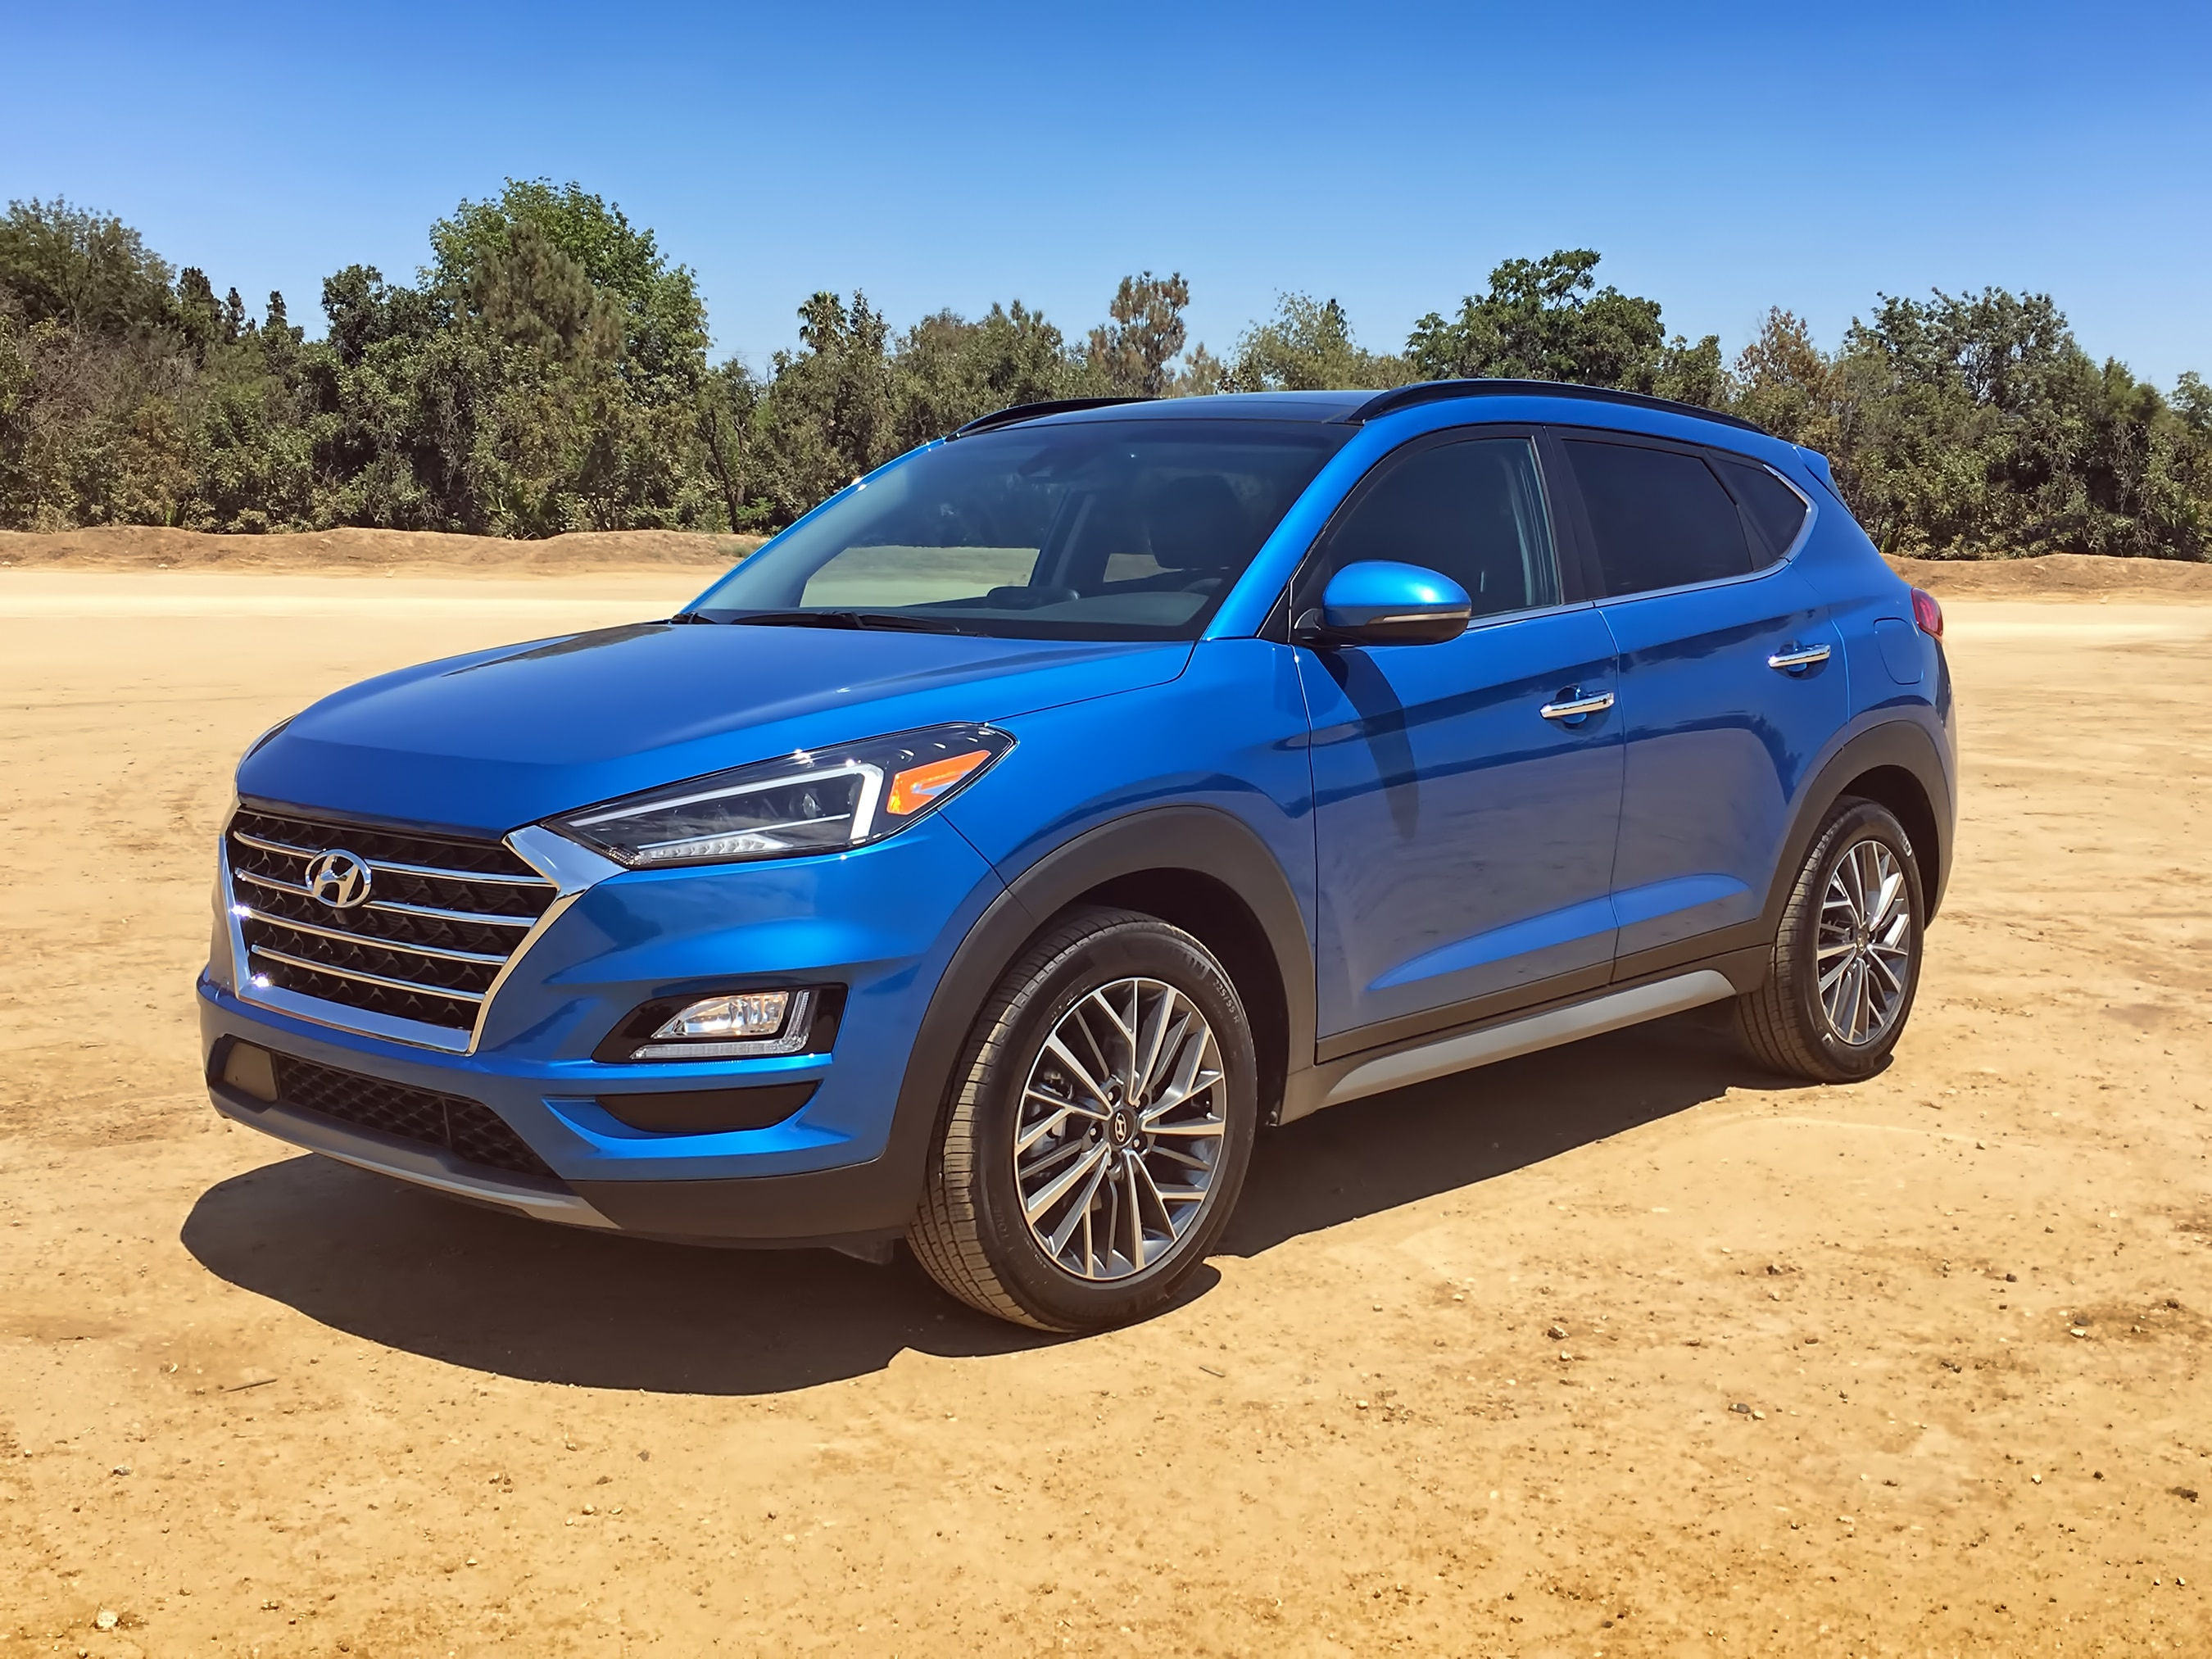 2019 Hyundai Tucson Ultimate Review: It's Ultimate Alright